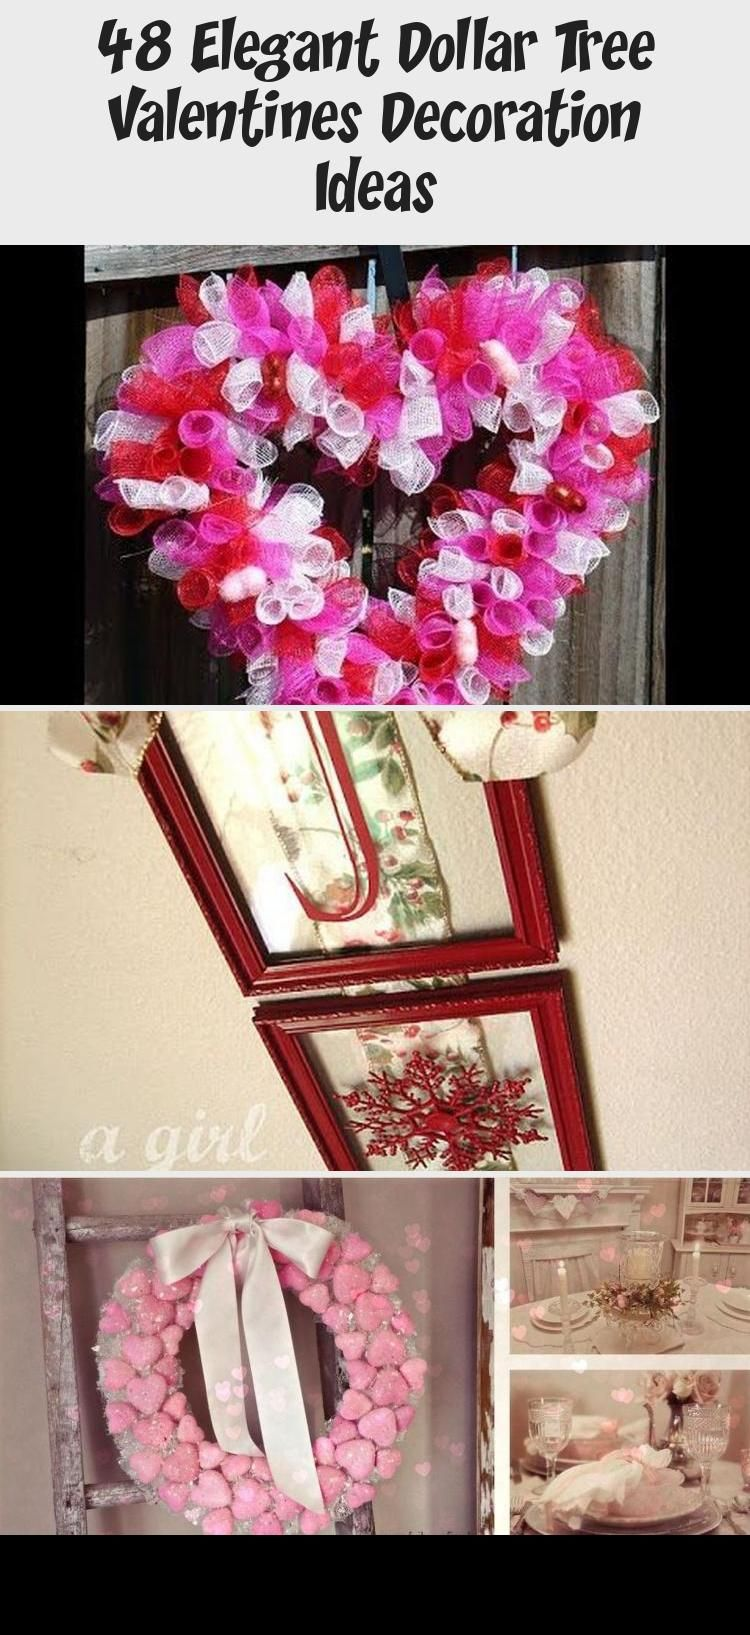 48 Elegant Dollar Tree Valentines Decoration Ideas